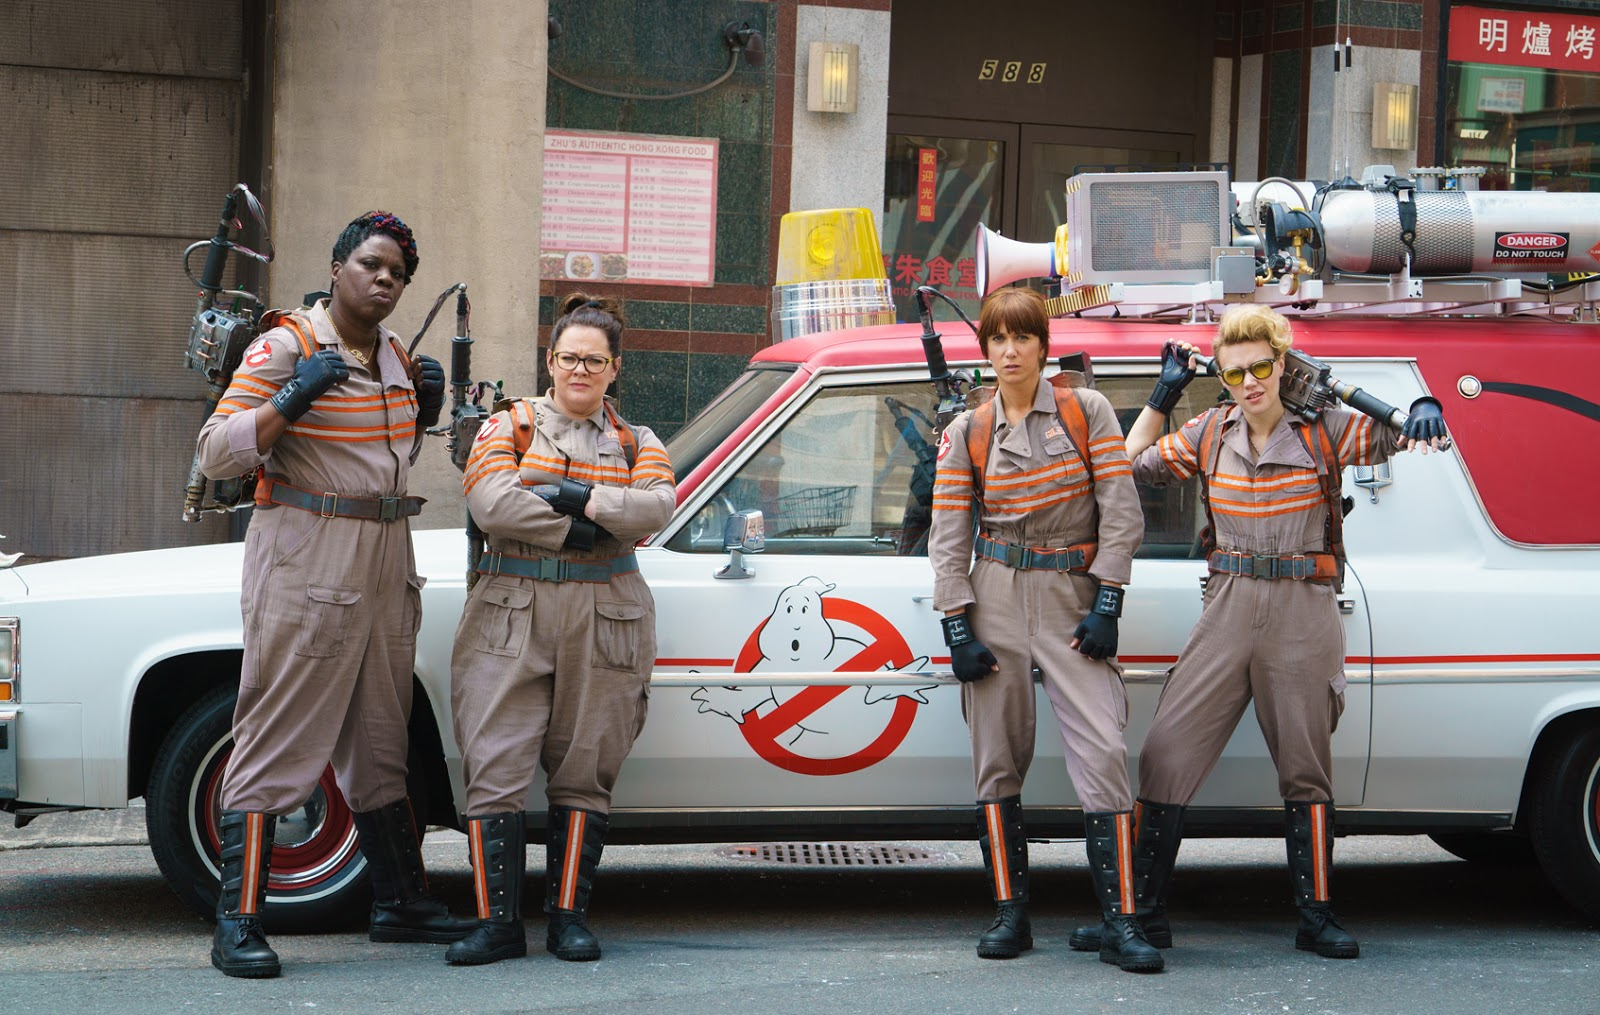 Movies In July 2016 City Of Kik The Engine Whisperertm Blog Archive Car Trailer Wiring First Two Ghostbusters From 1980s Were Classics This Relaunch Franchise Features Comedic Talents Melissa Mccarthy